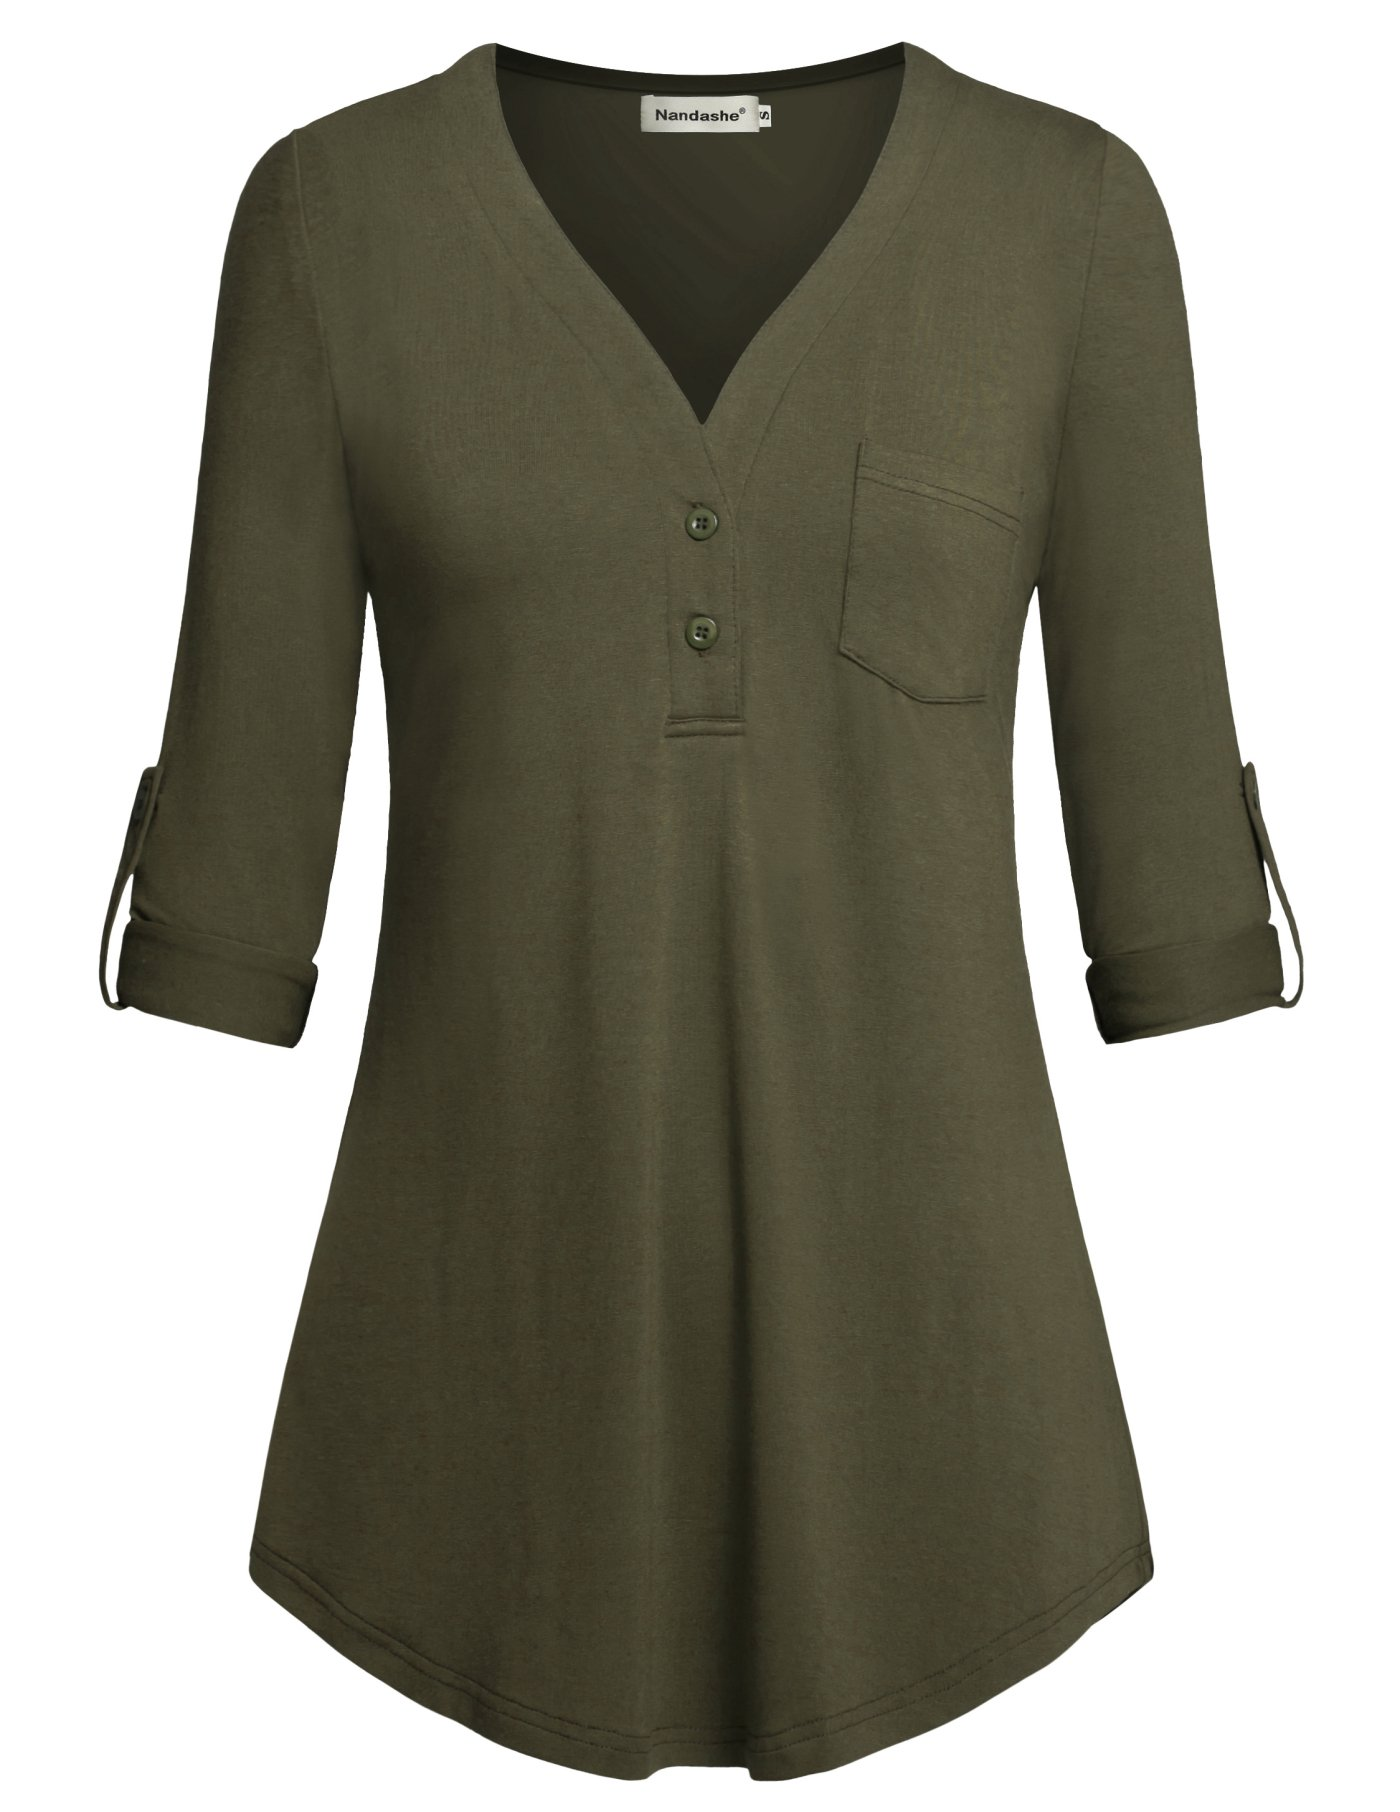 Nandashe Long Sleeve Blouse for Women Office, 2018 Fashion Country Style Elbow Length Hippie Shirts Peasant Blouse Pullover Sweatshirts with Front Button Mustard Army Green Color XL Plus Size